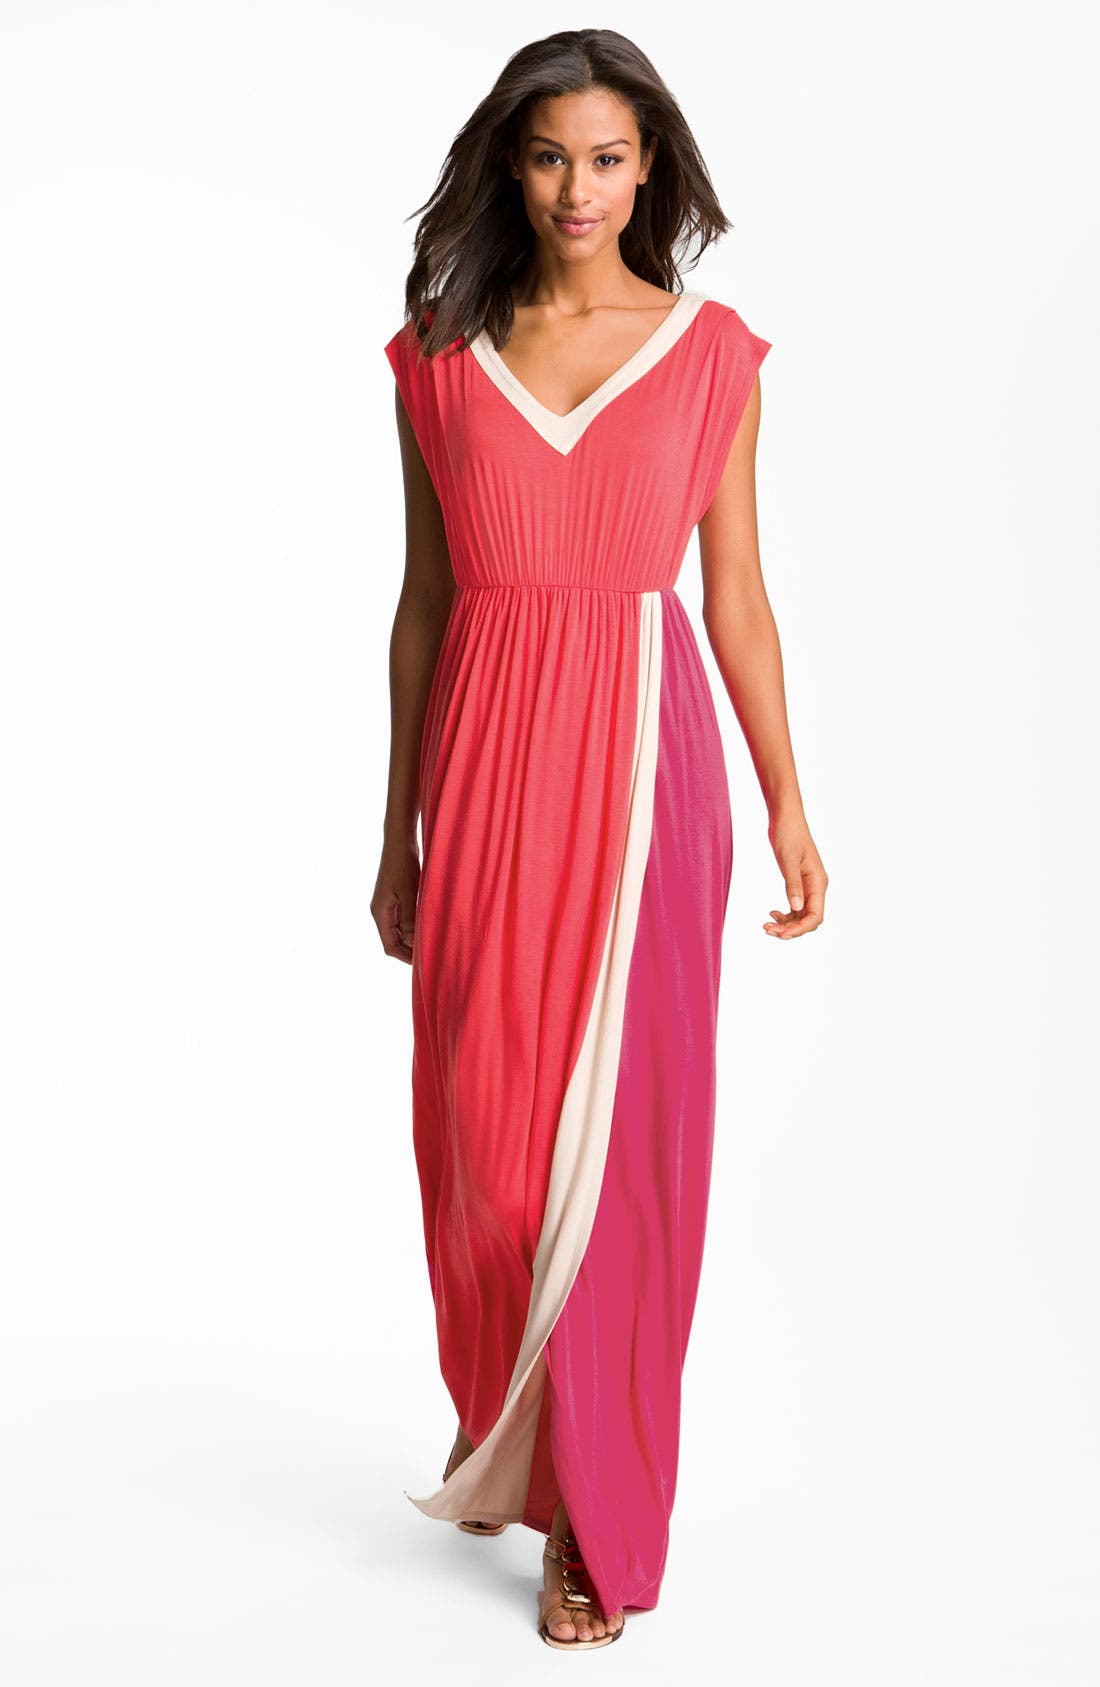 Alternate Image 1 Selected - Felicity & Coco Contrast Trim Colorblock Jersey Maxi Dress (Nordstrom Exclusive)